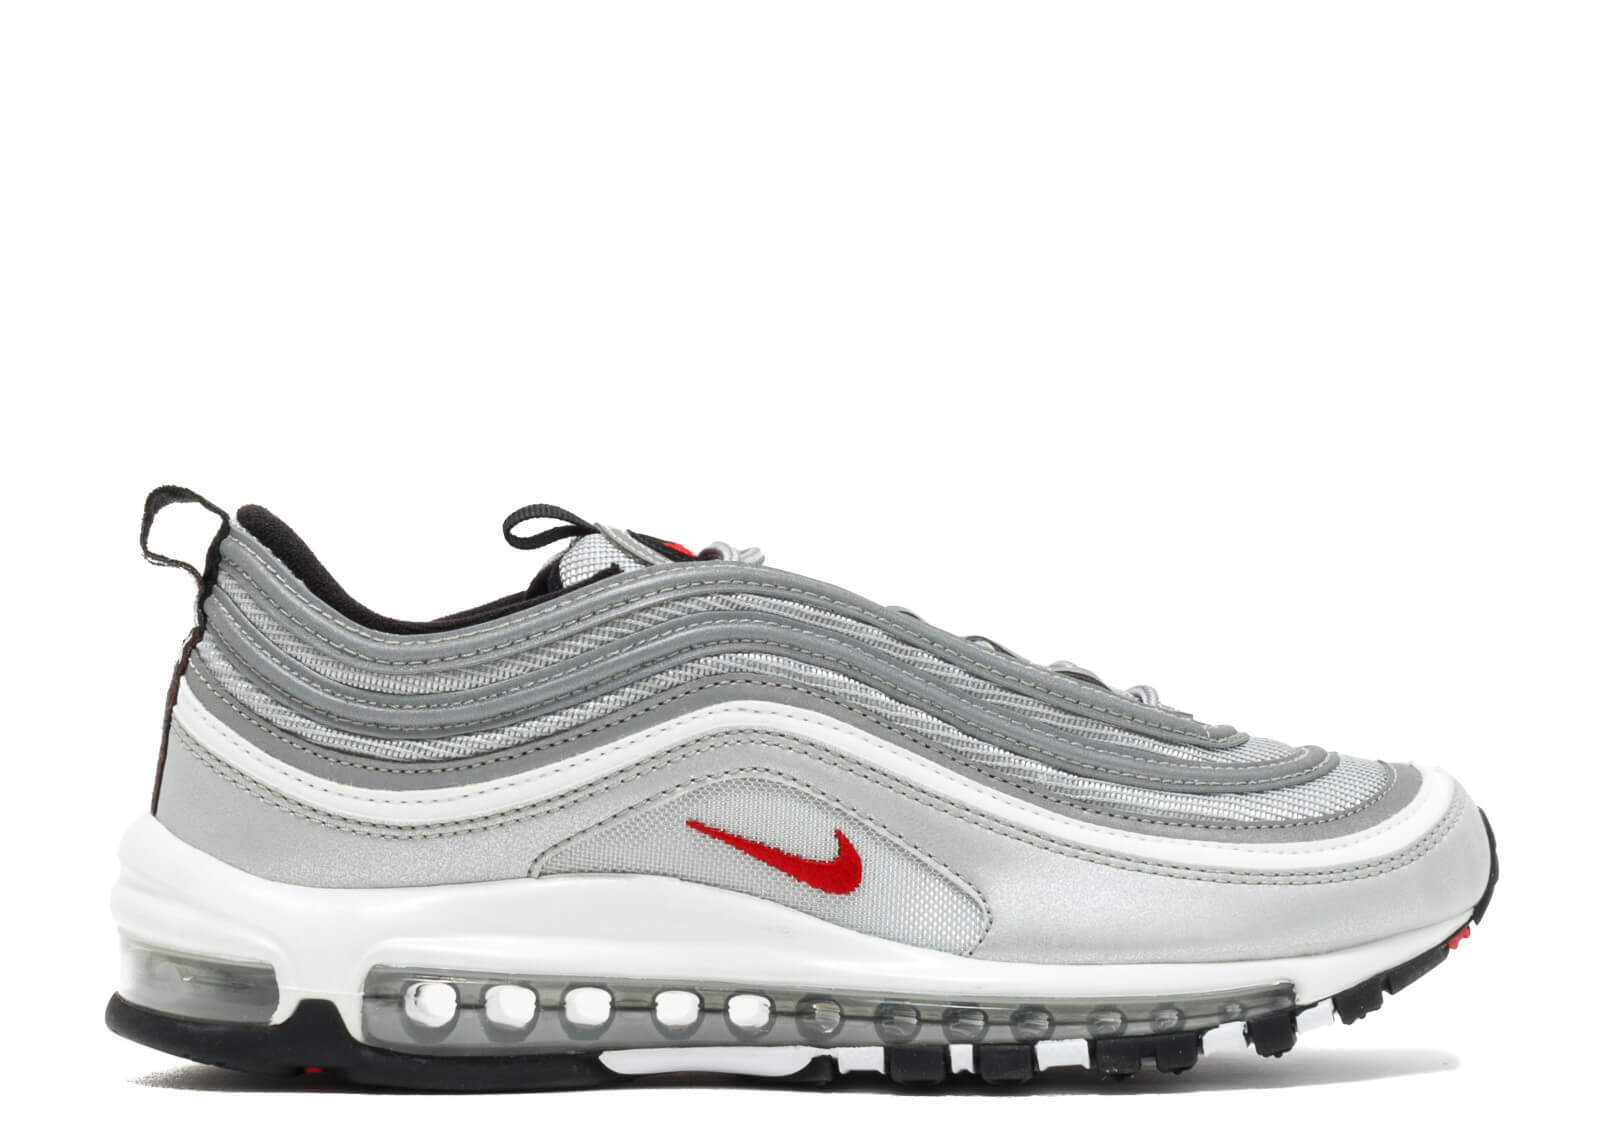 Nike Air Max 97 OG QS 'Silver Bullet' | Authentic